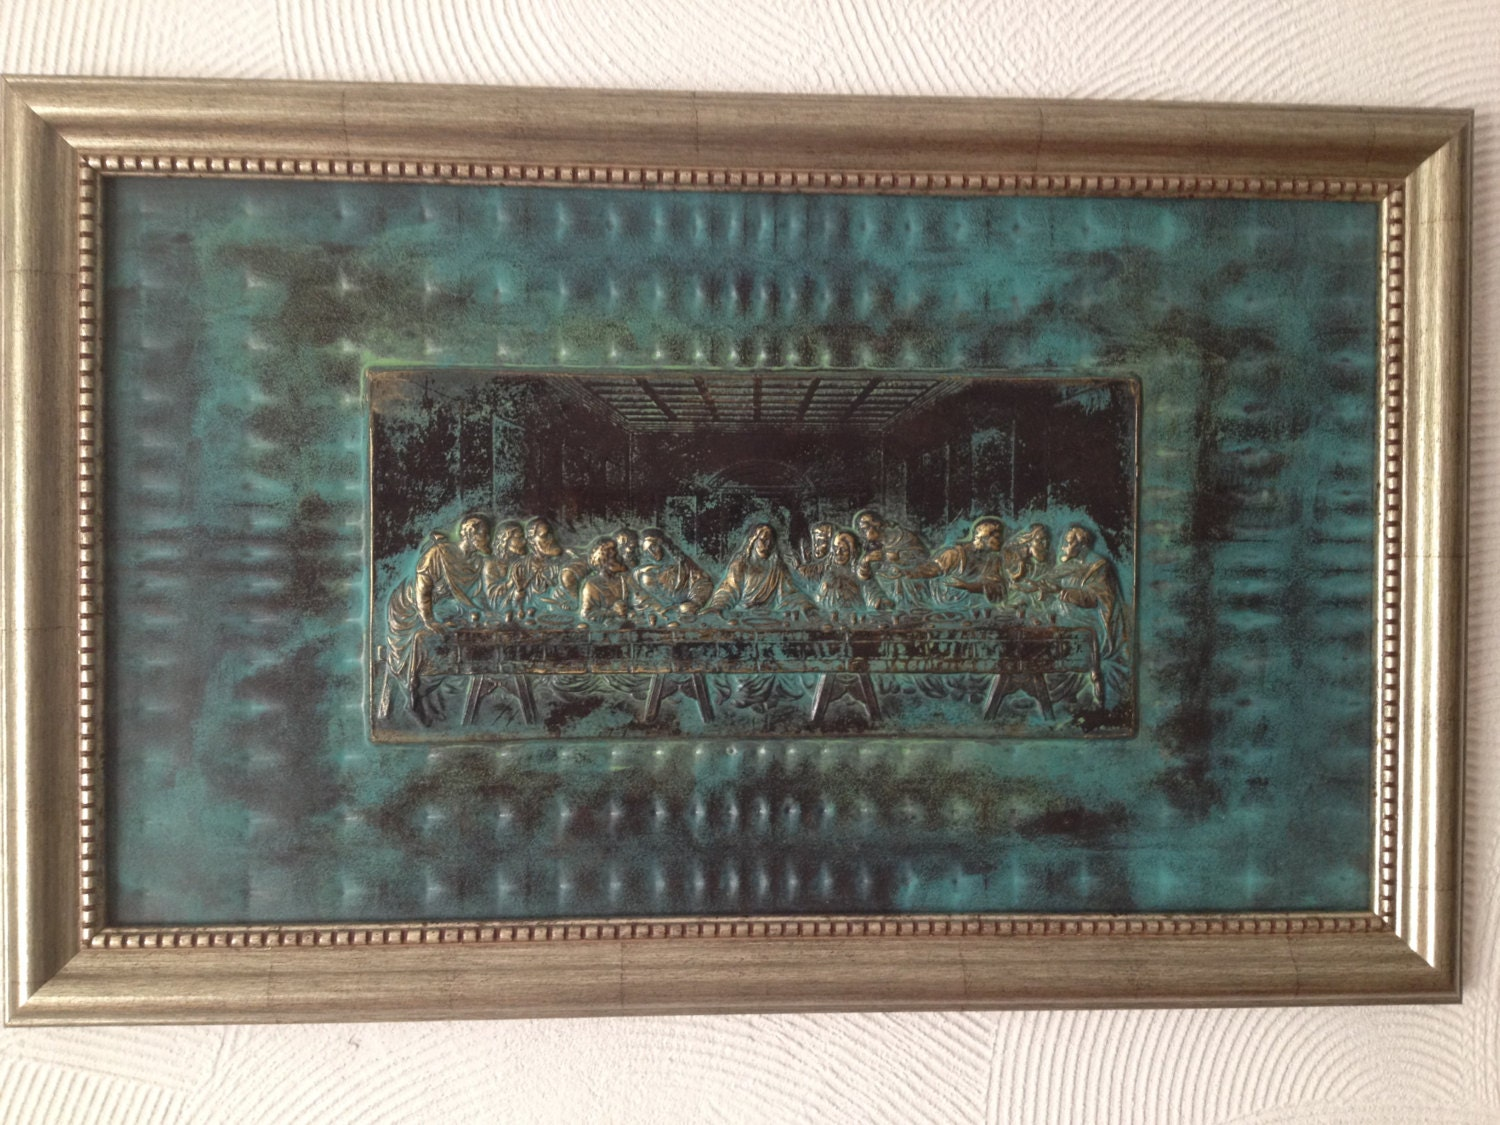 Bronze Wall Decor The Last Supper Bas Reliefr Metal Wall